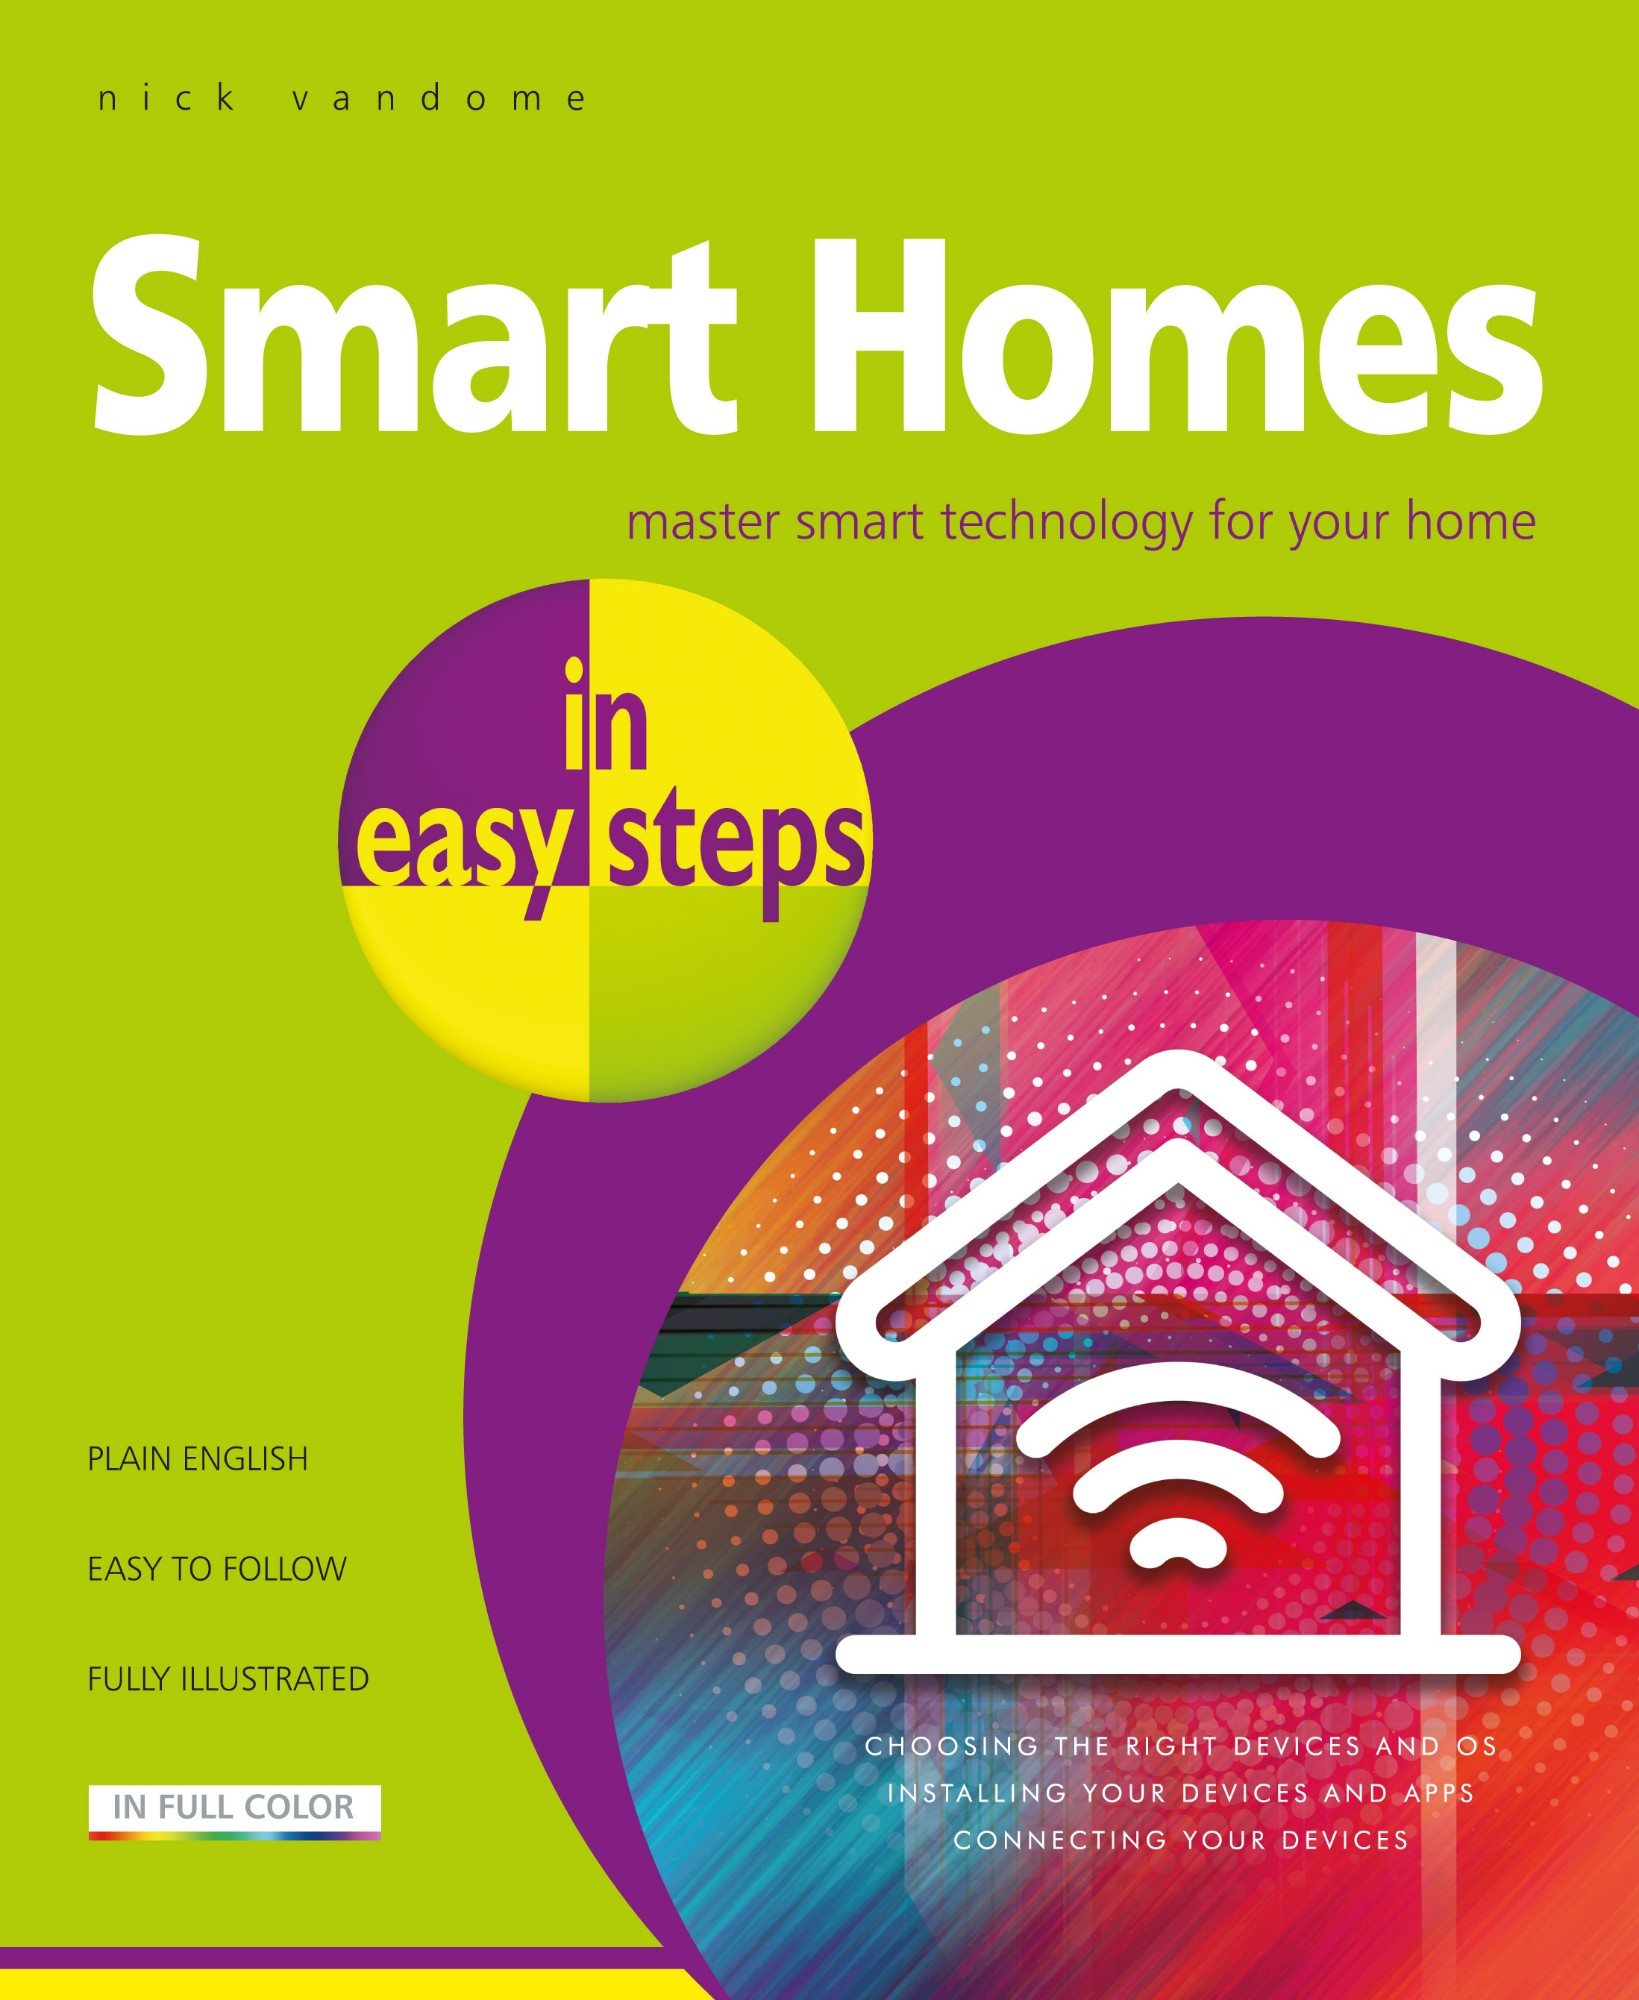 IN EASY STEPS Maplin Manual Master Smart Homes Technology In Easy Steps Fully Illustrated